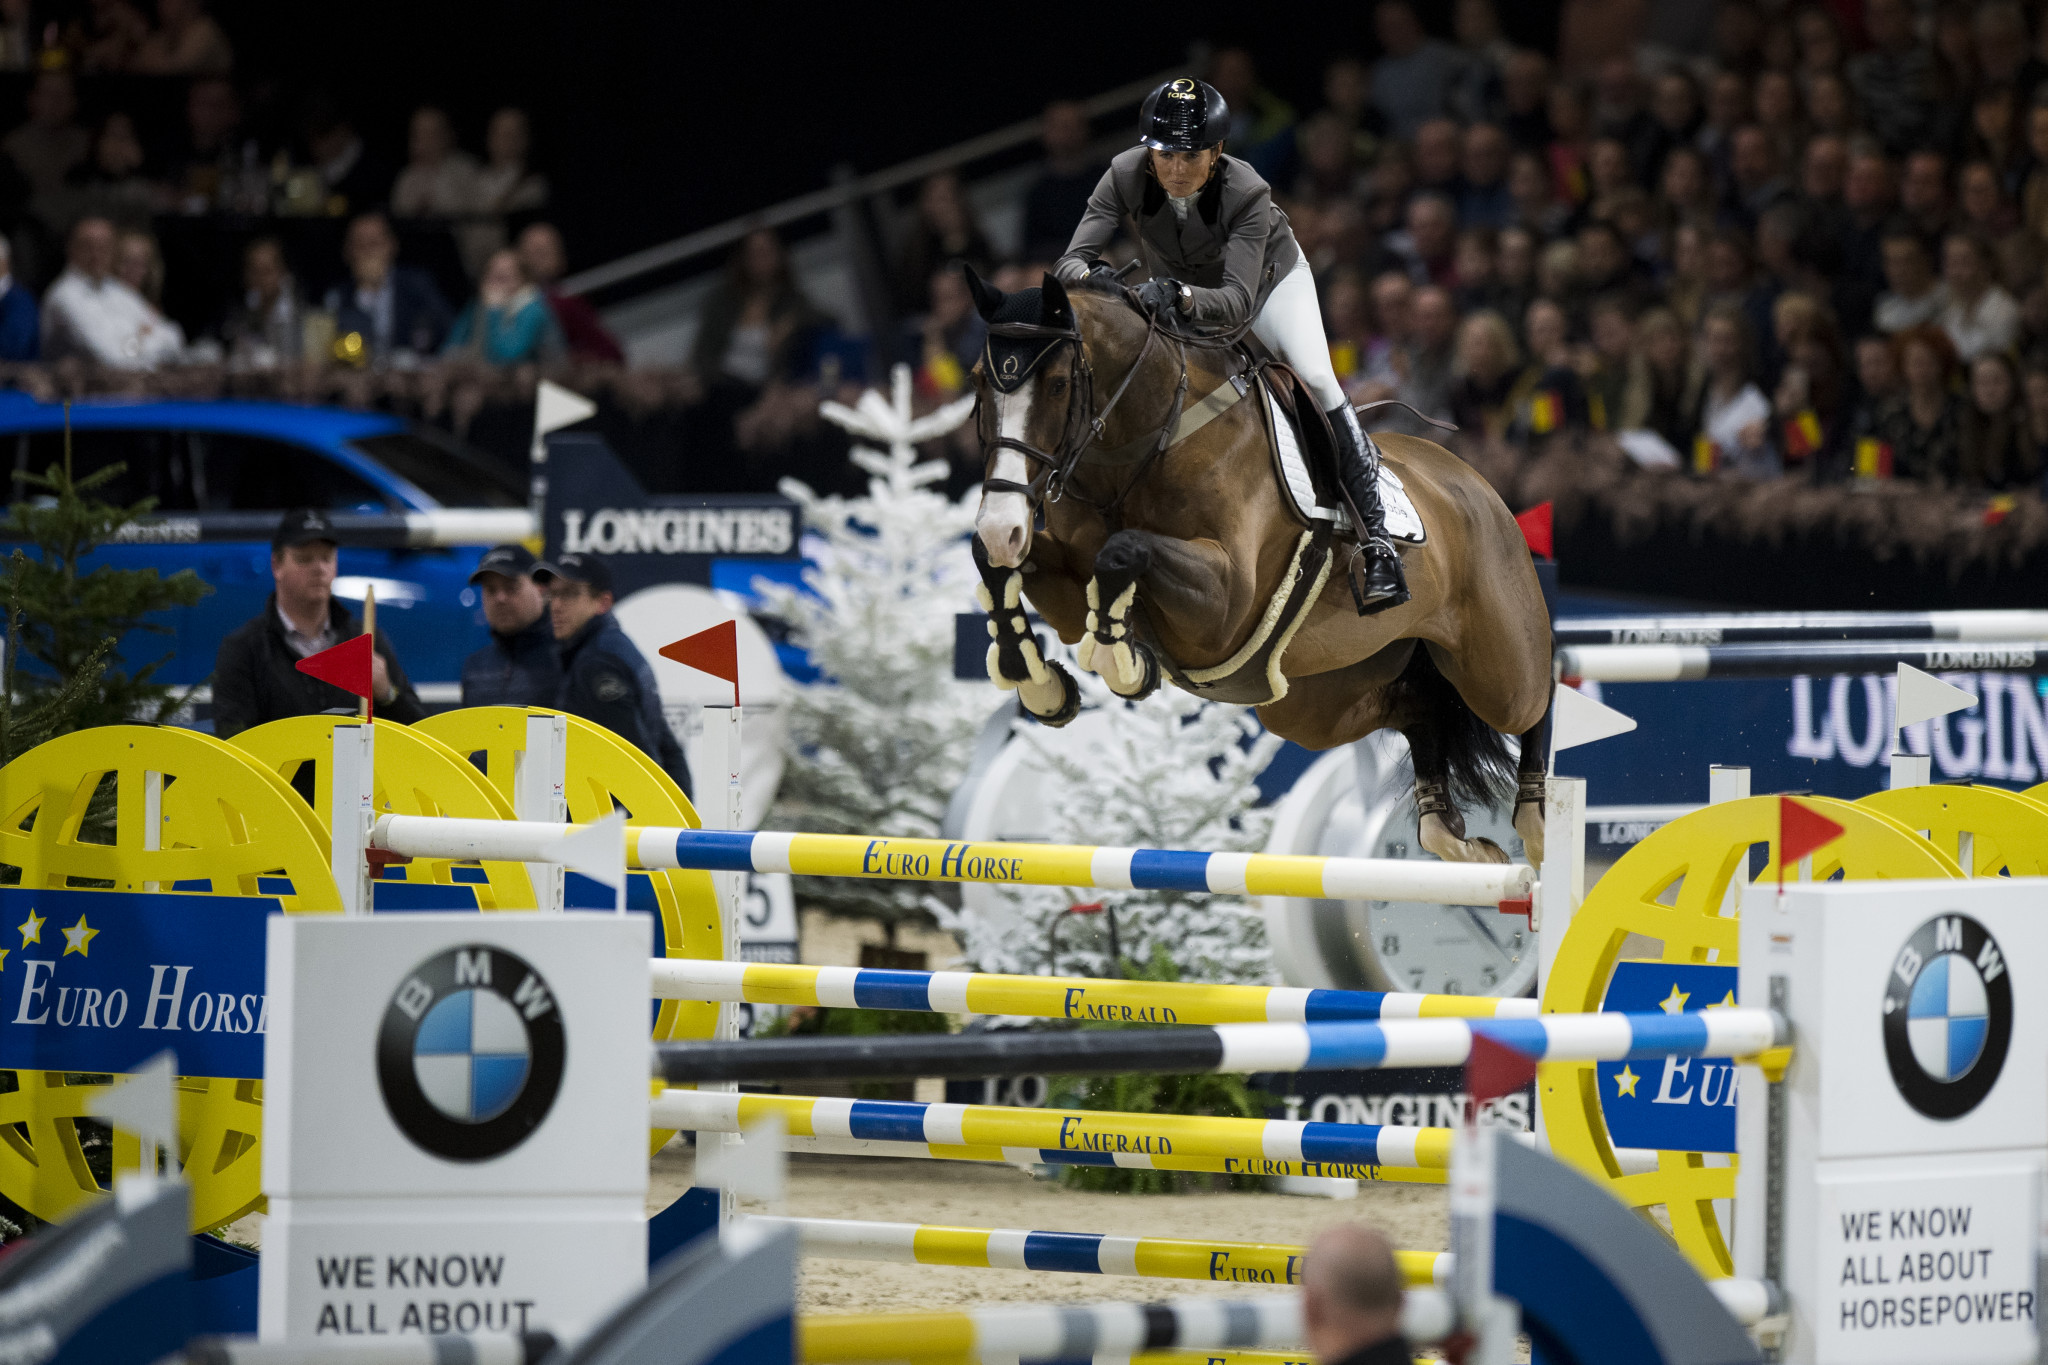 FEI marks one year to go before World Championships in Herning